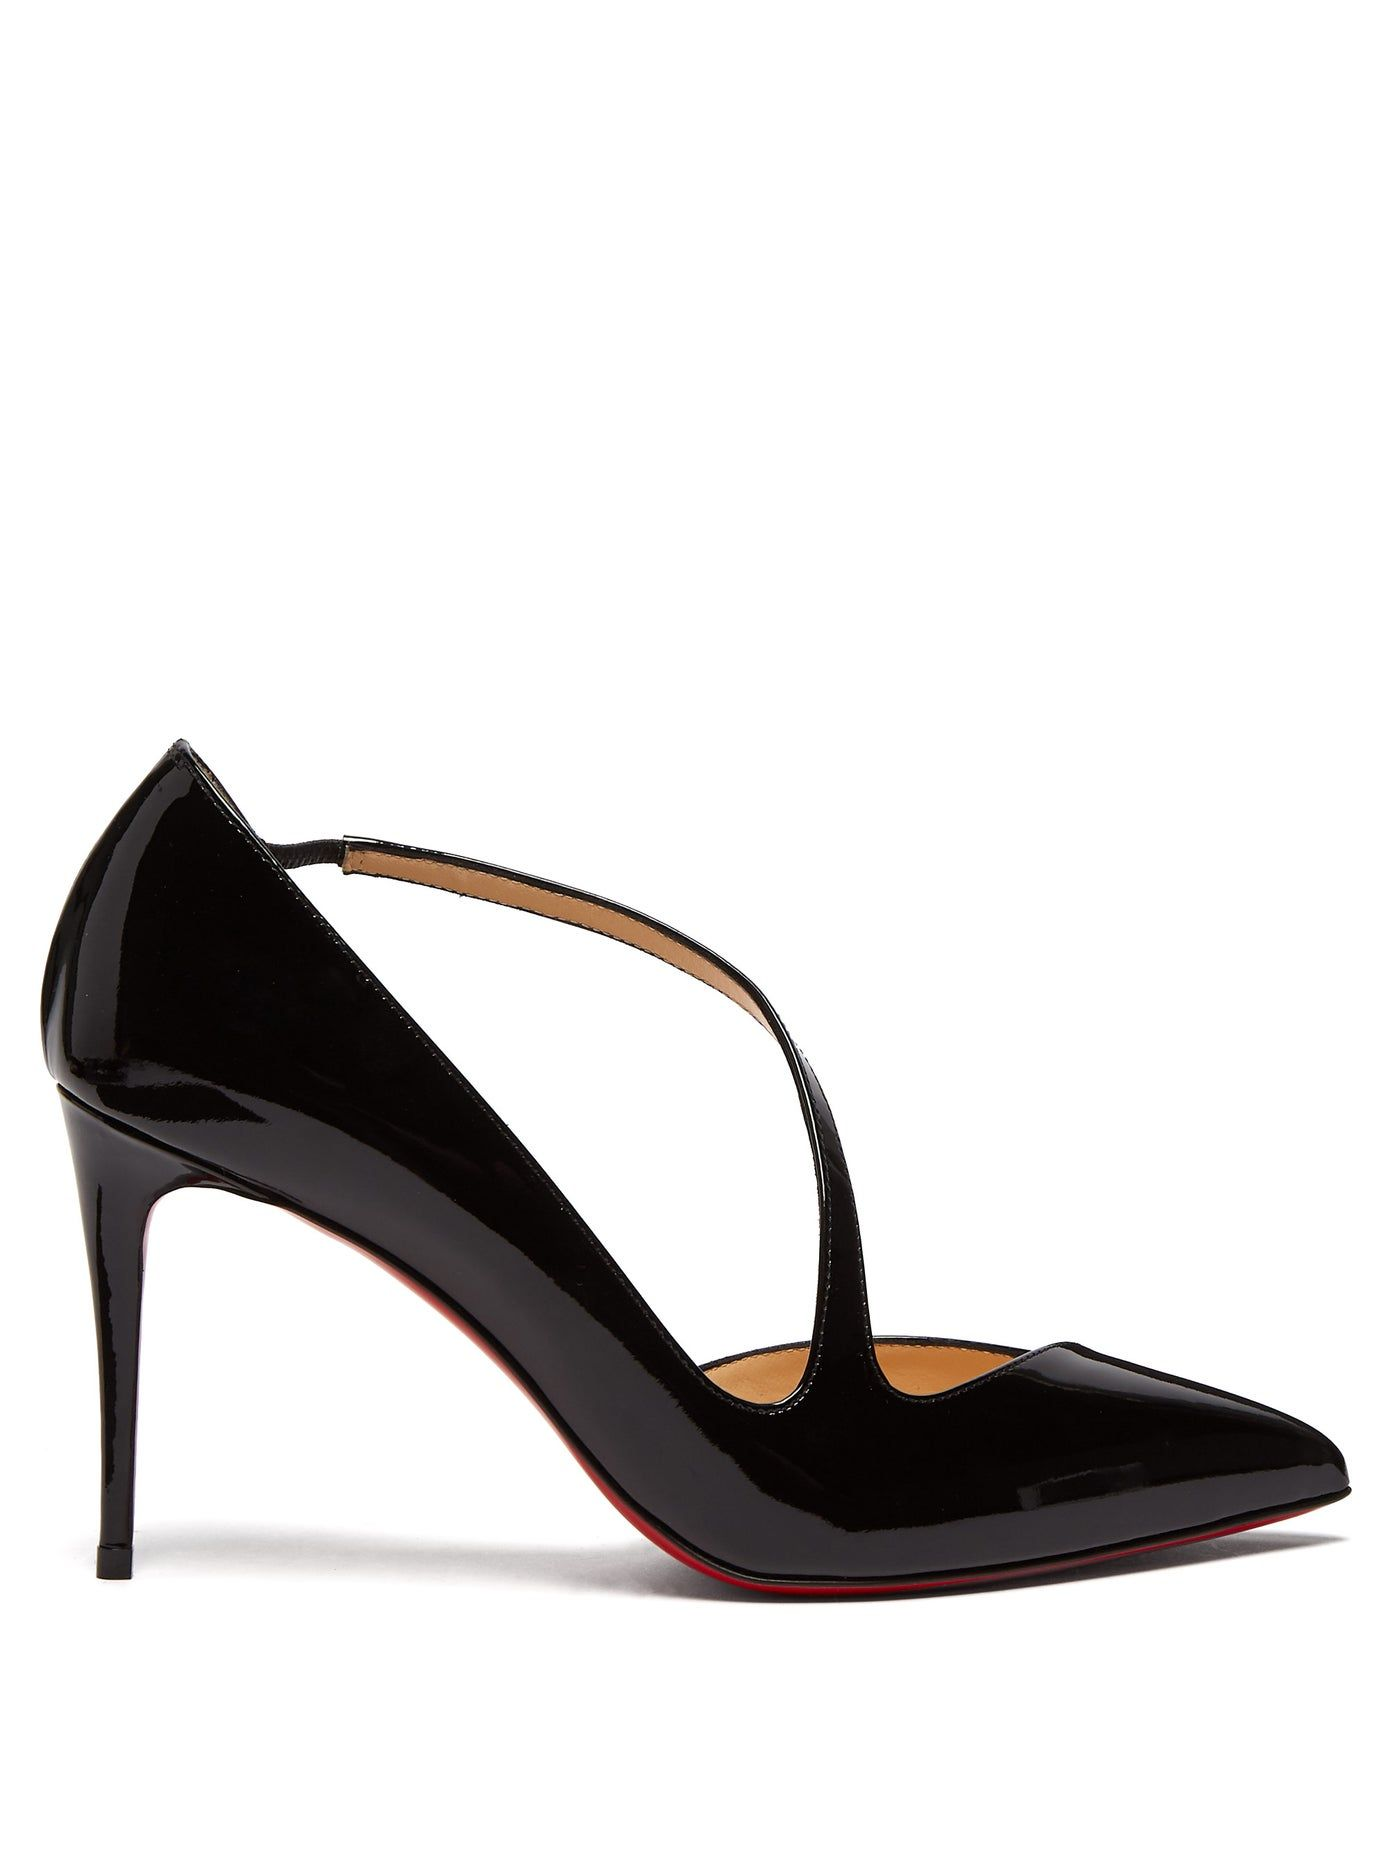 Jumping 85 patent leather pumps | Christian Louboutin